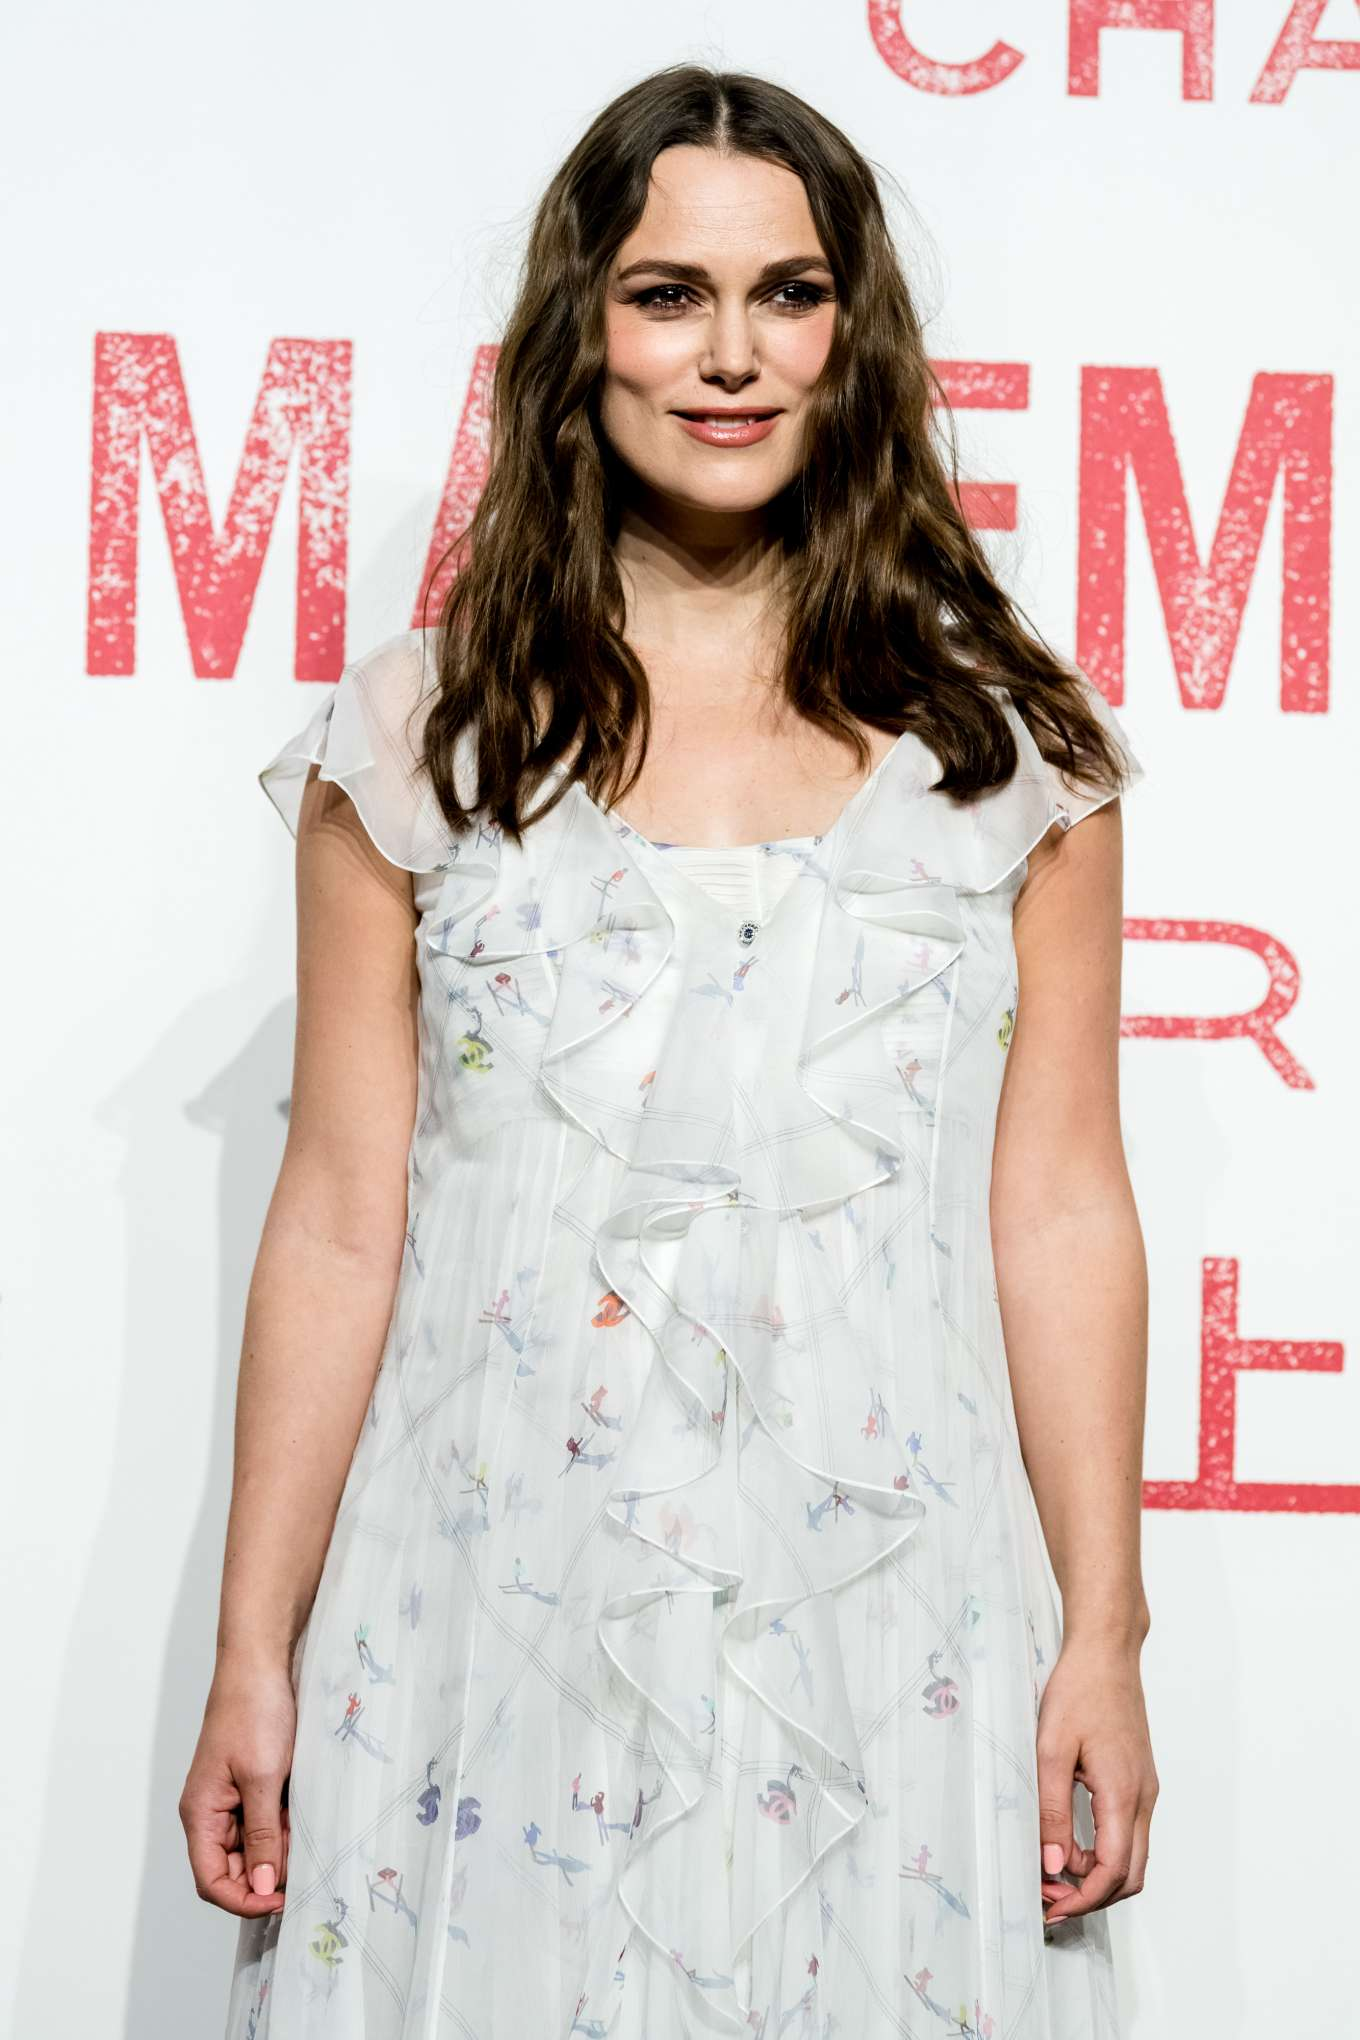 Keira Knightley 2019 : Keira Knightley: Arrives for the Chanel Mademoiselle Prive exhibition -03